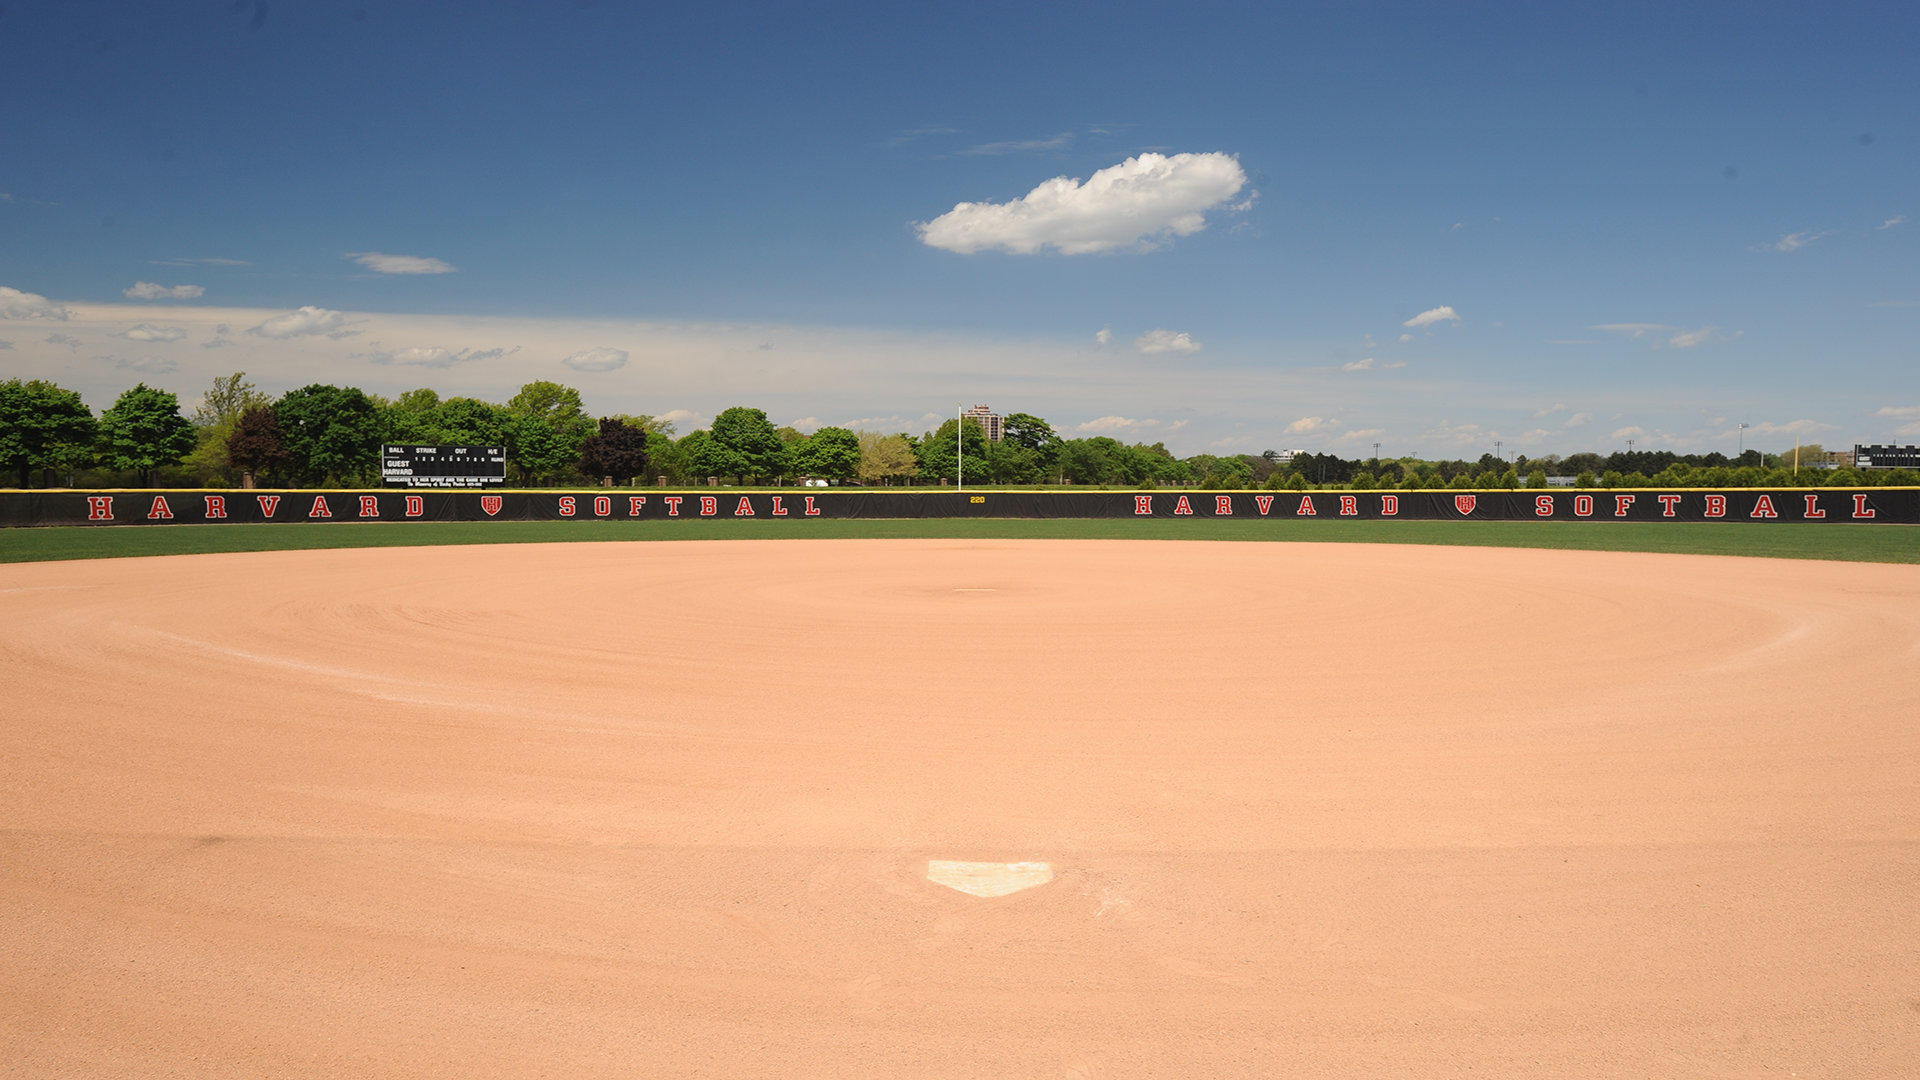 Soldiers Softball Field